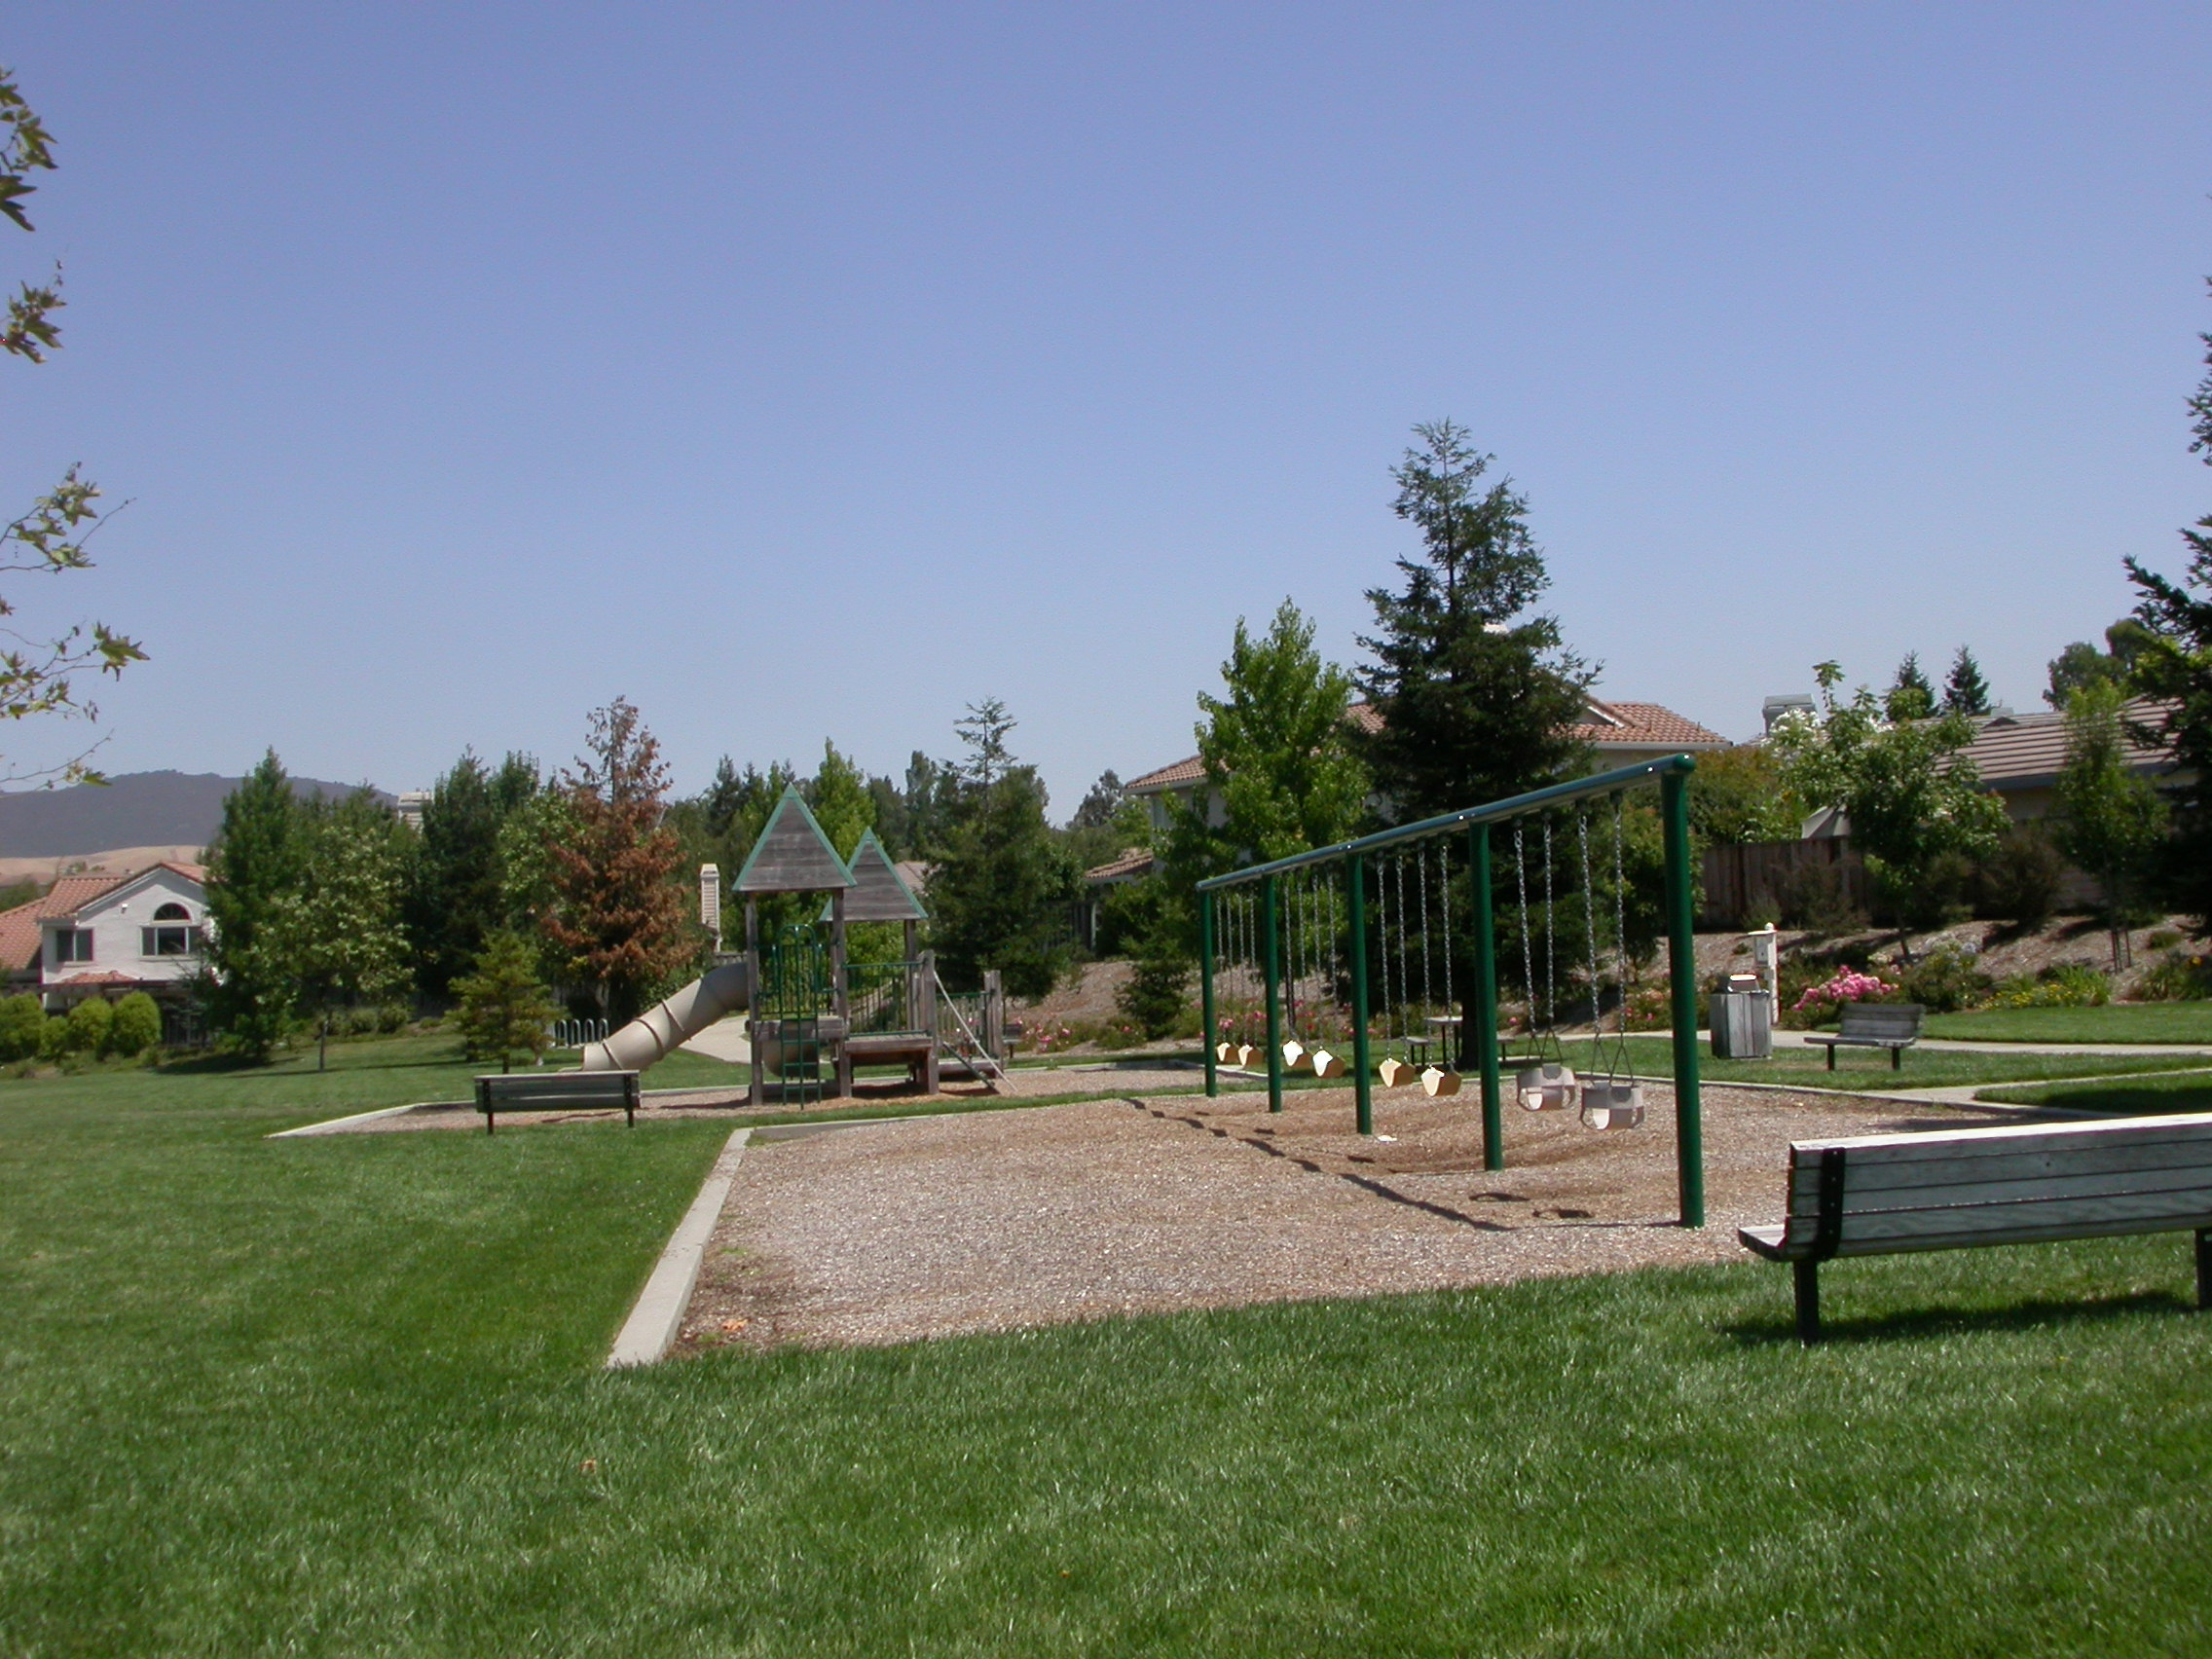 vistatassajara-community-play-ground.jpg #29